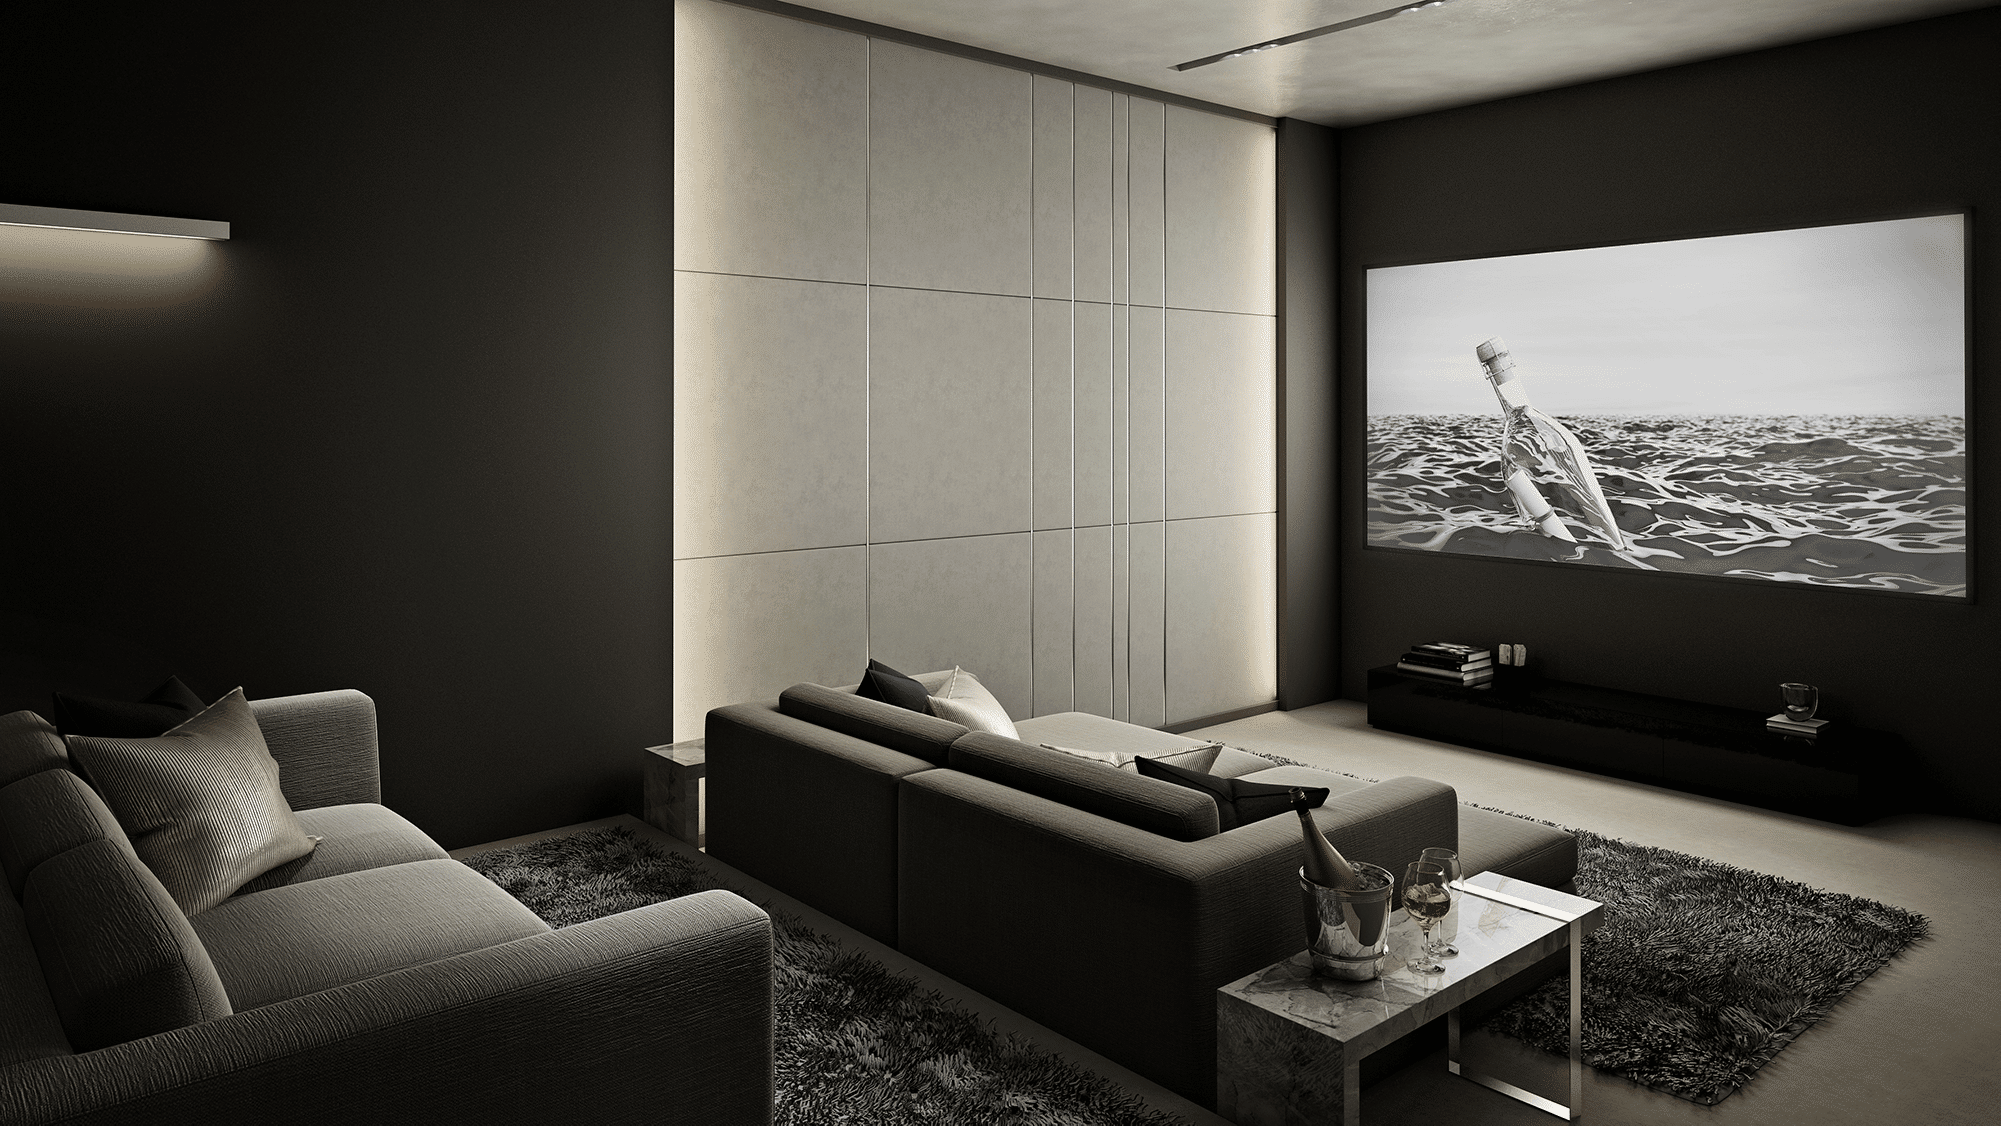 Media Room Home Cinema and Surround Sound